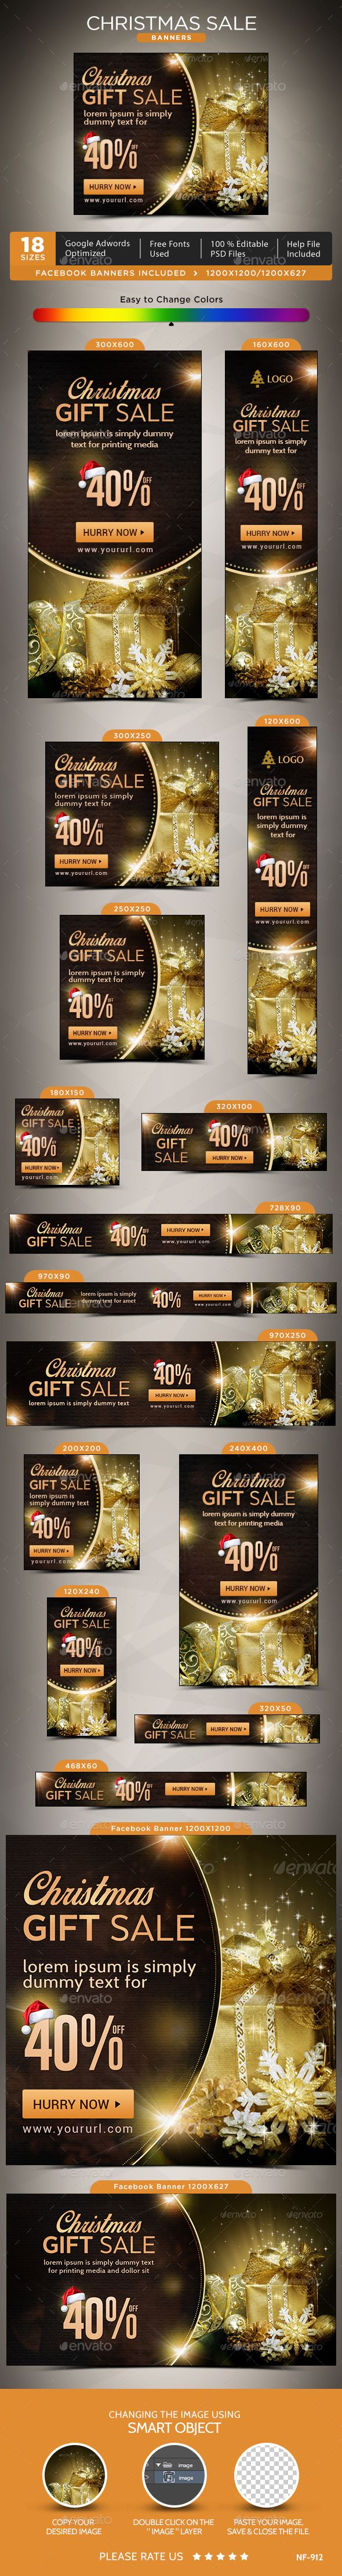 Christmas Web Banners Templates PSD #design #ads Download: http://graphicriver.net/item/christmas-banners/14032725?ref=ksioks